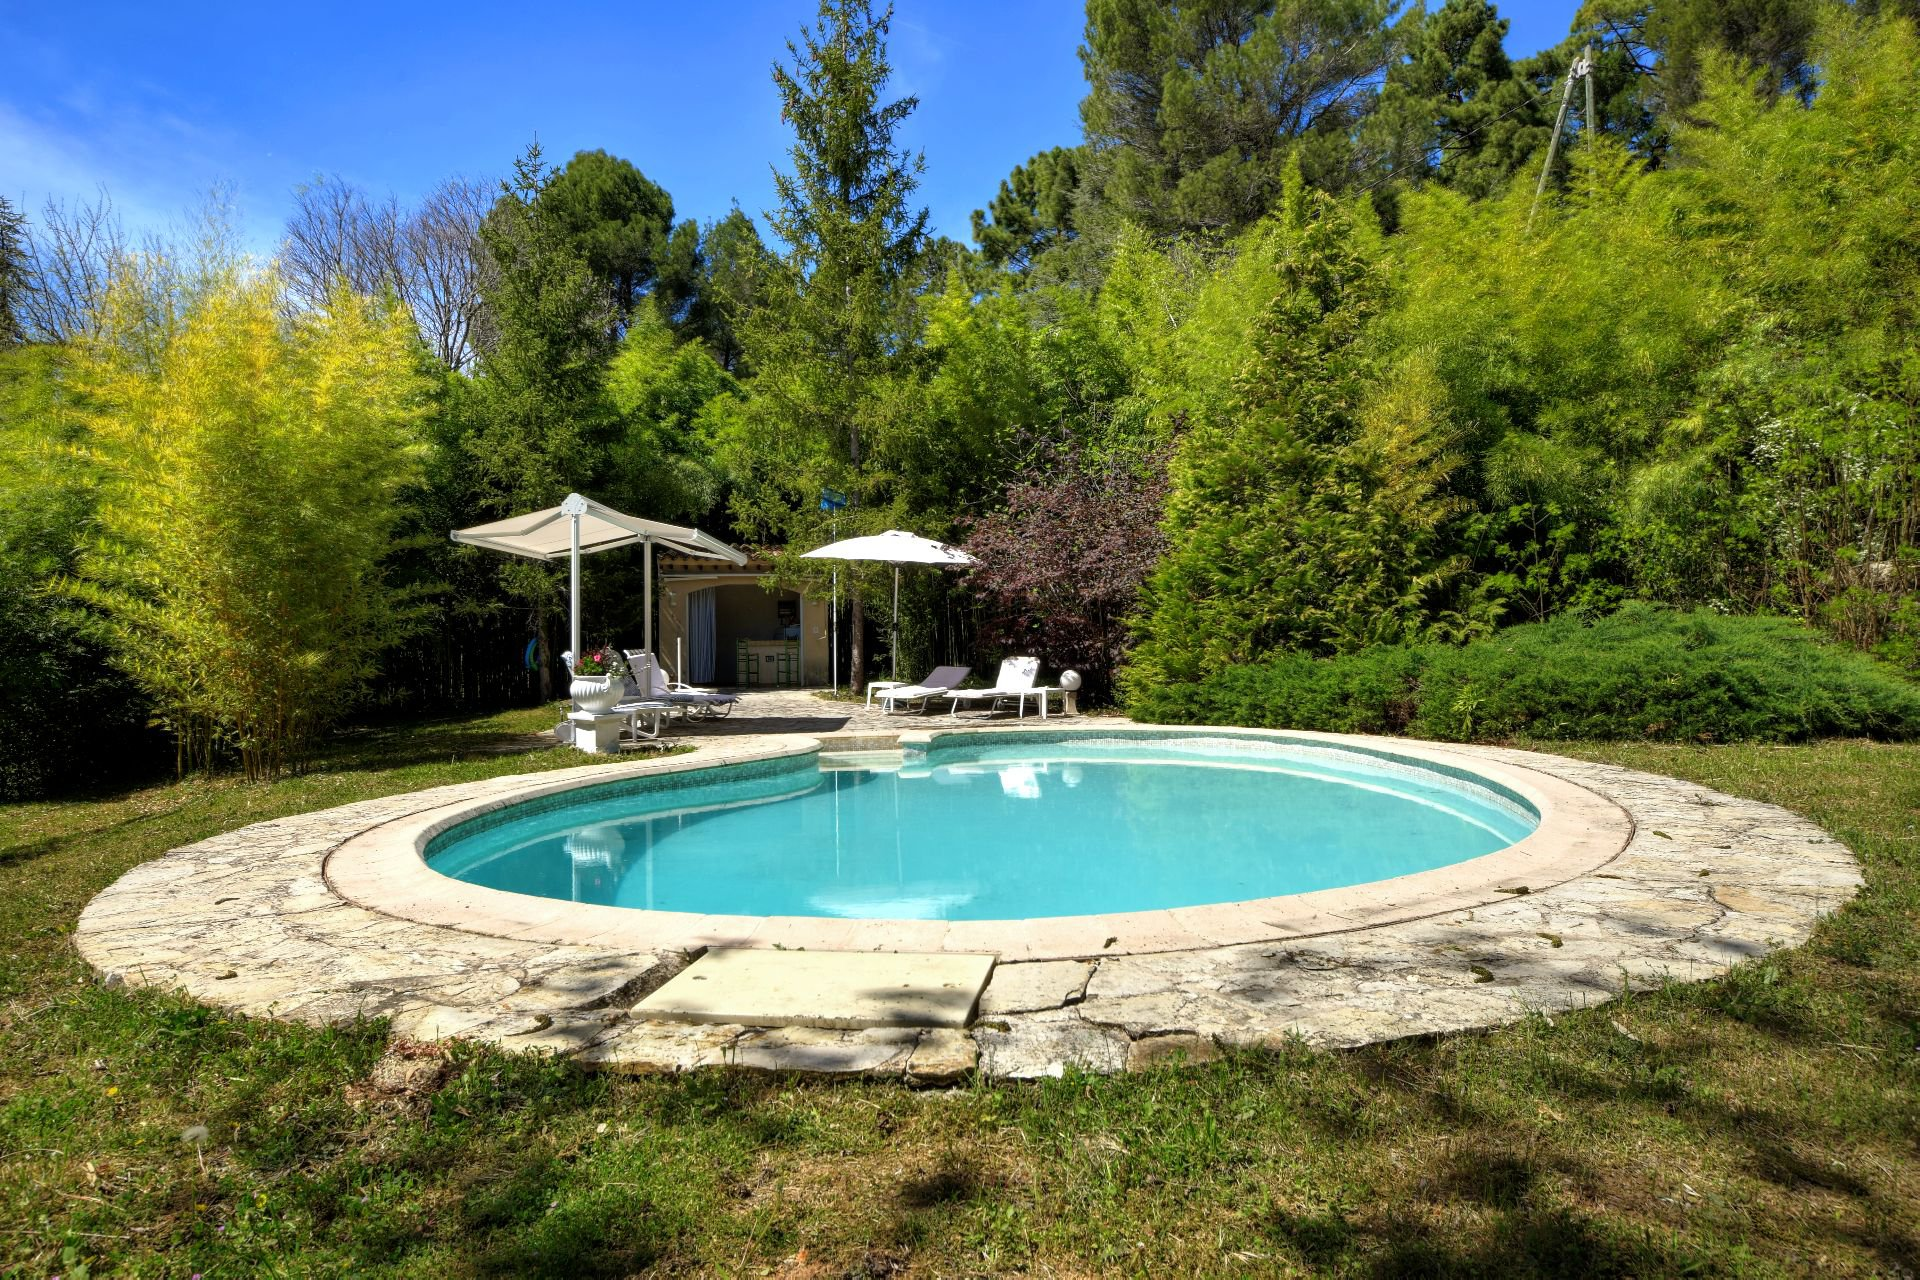 pool area with pool house, Salernes, Var Verdon